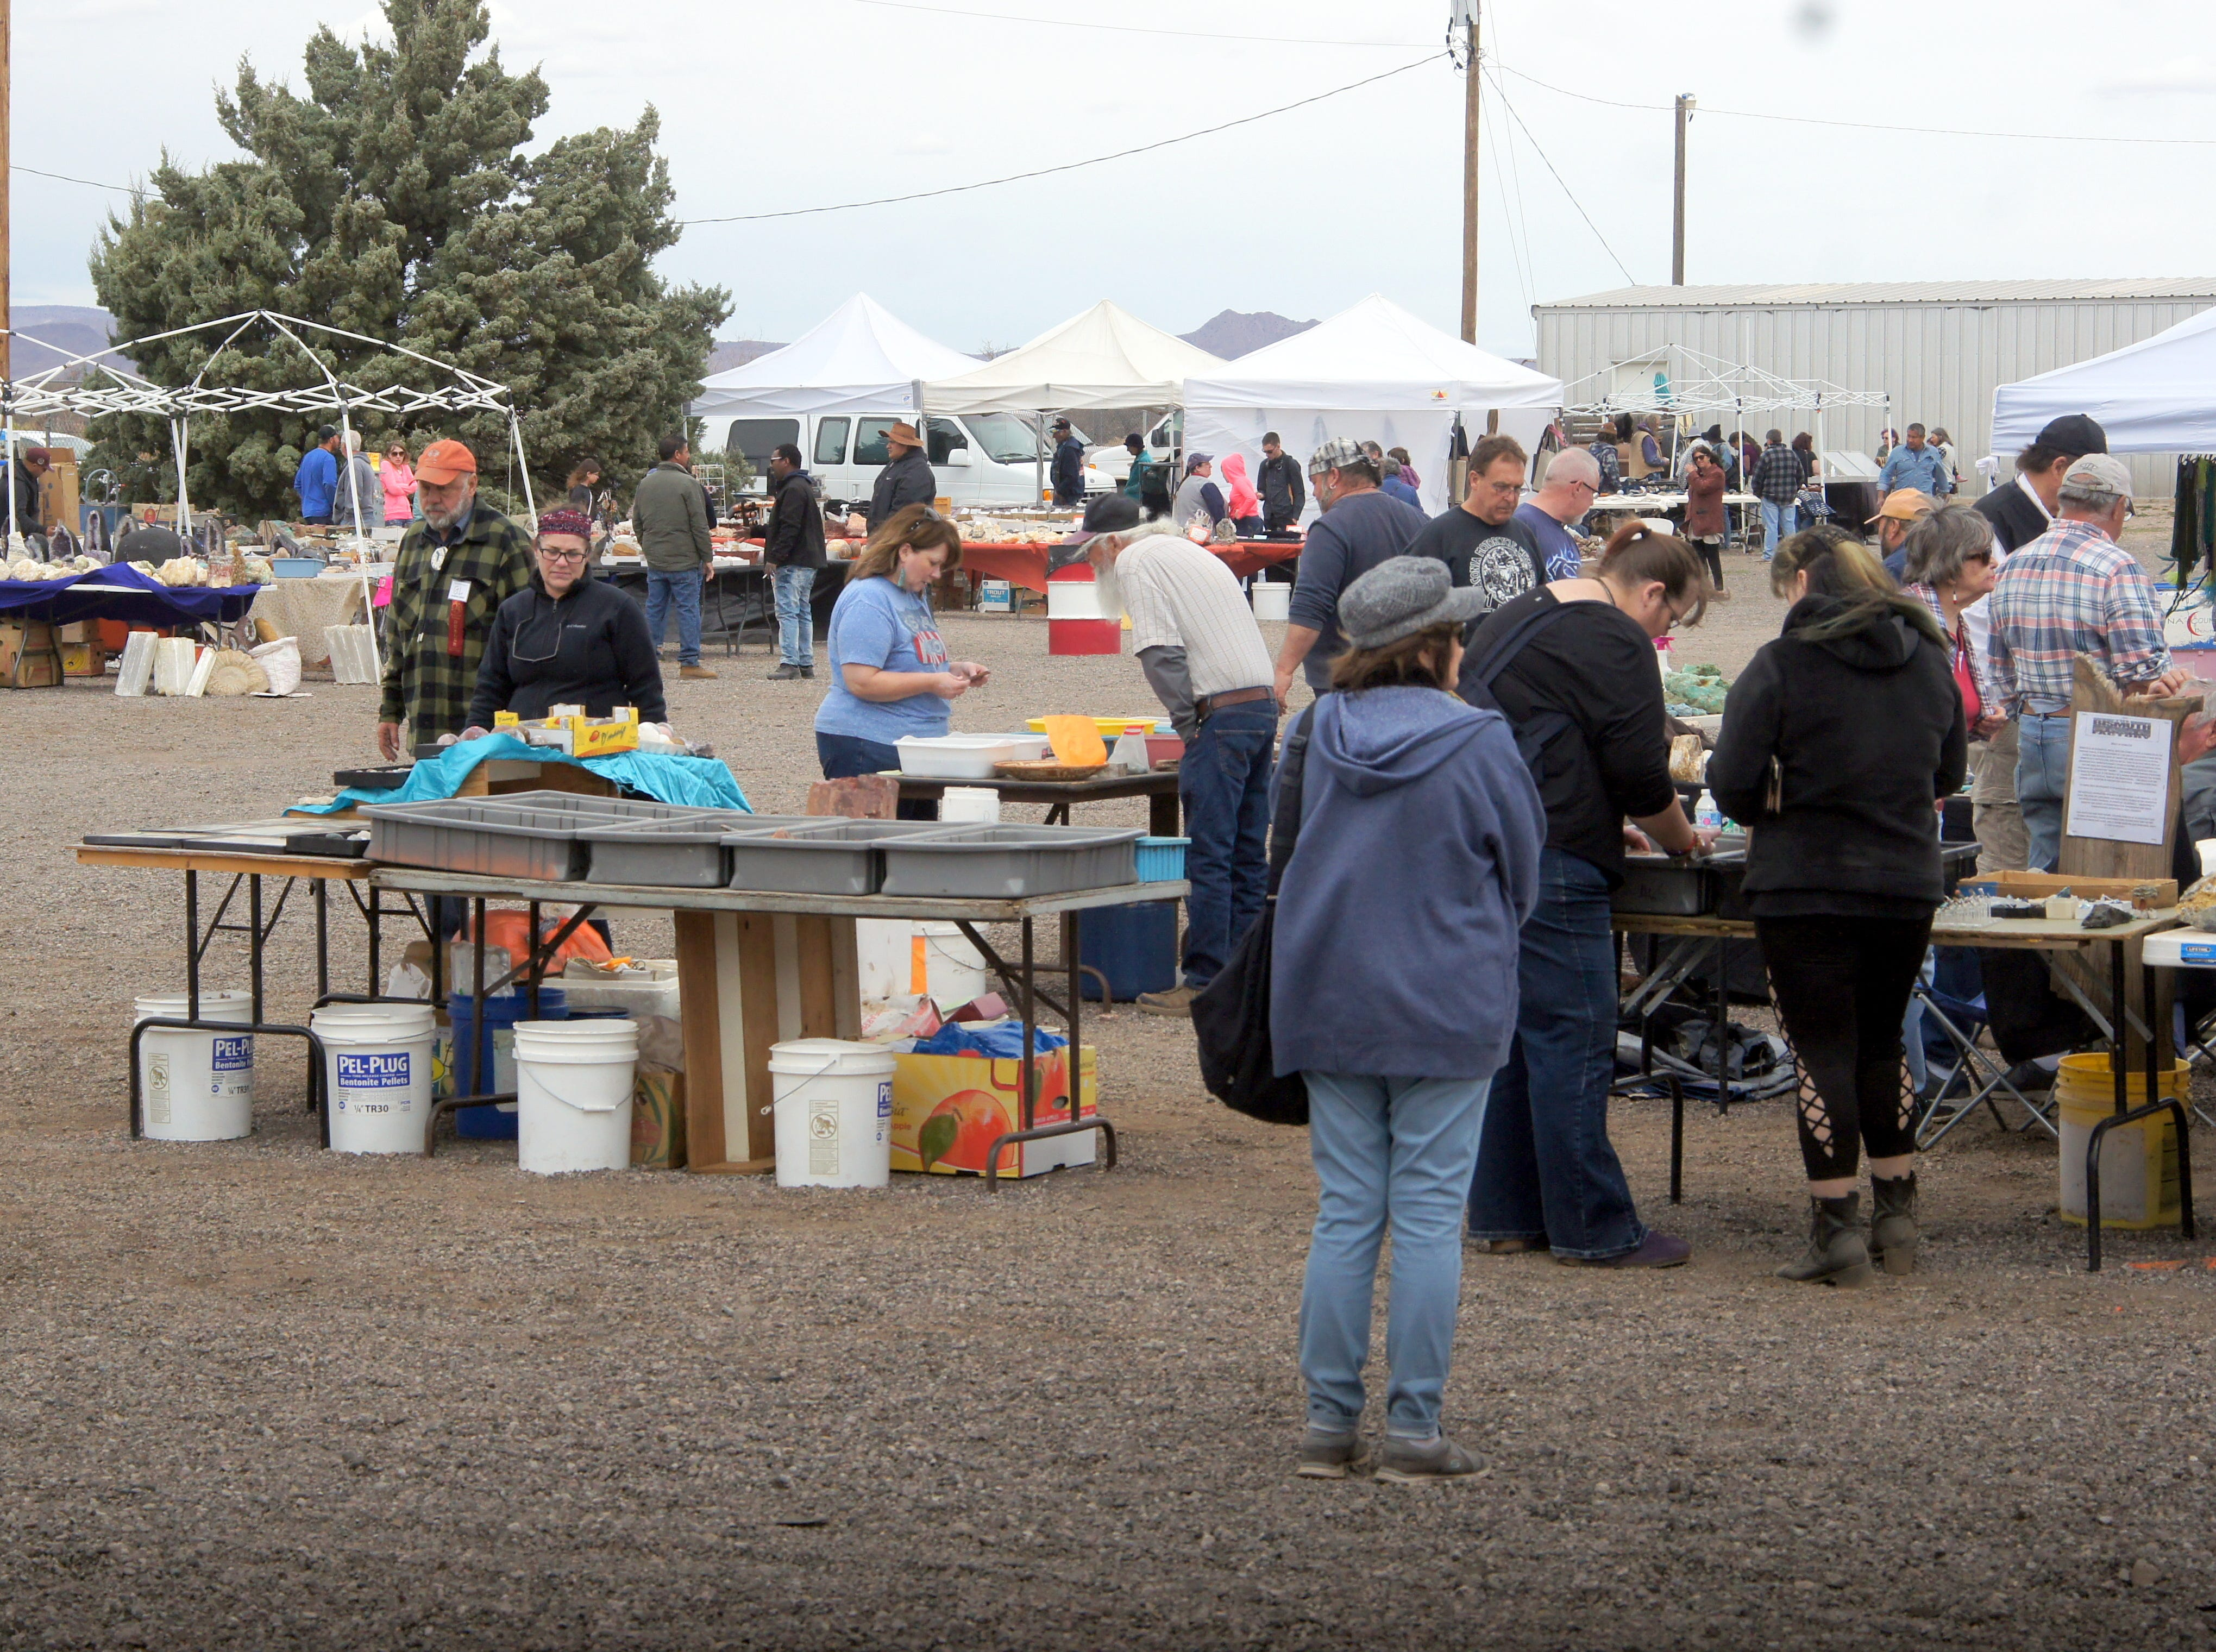 Vendors filled the grounds at the Southwestern New Mexico State fairgrounds for the 54th annual Rockhound Roundup in Deming, NM.